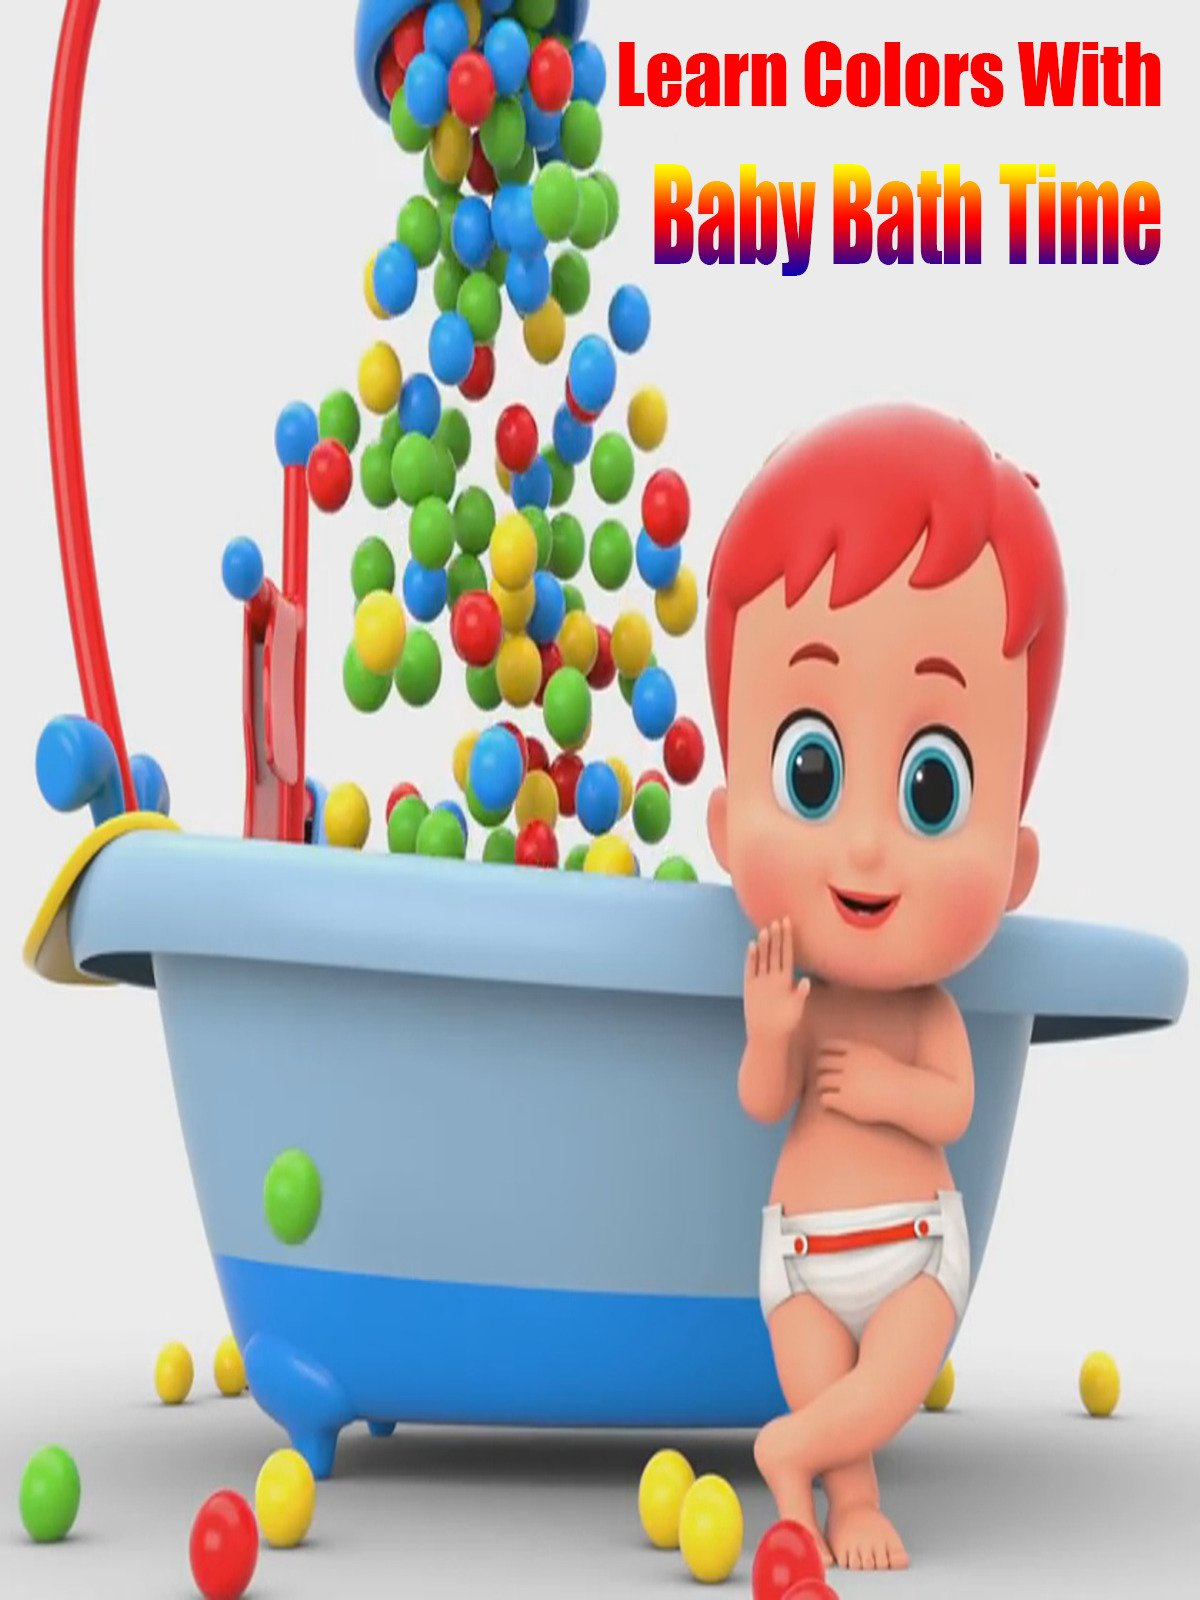 Learn Colors With Baby Bath Time